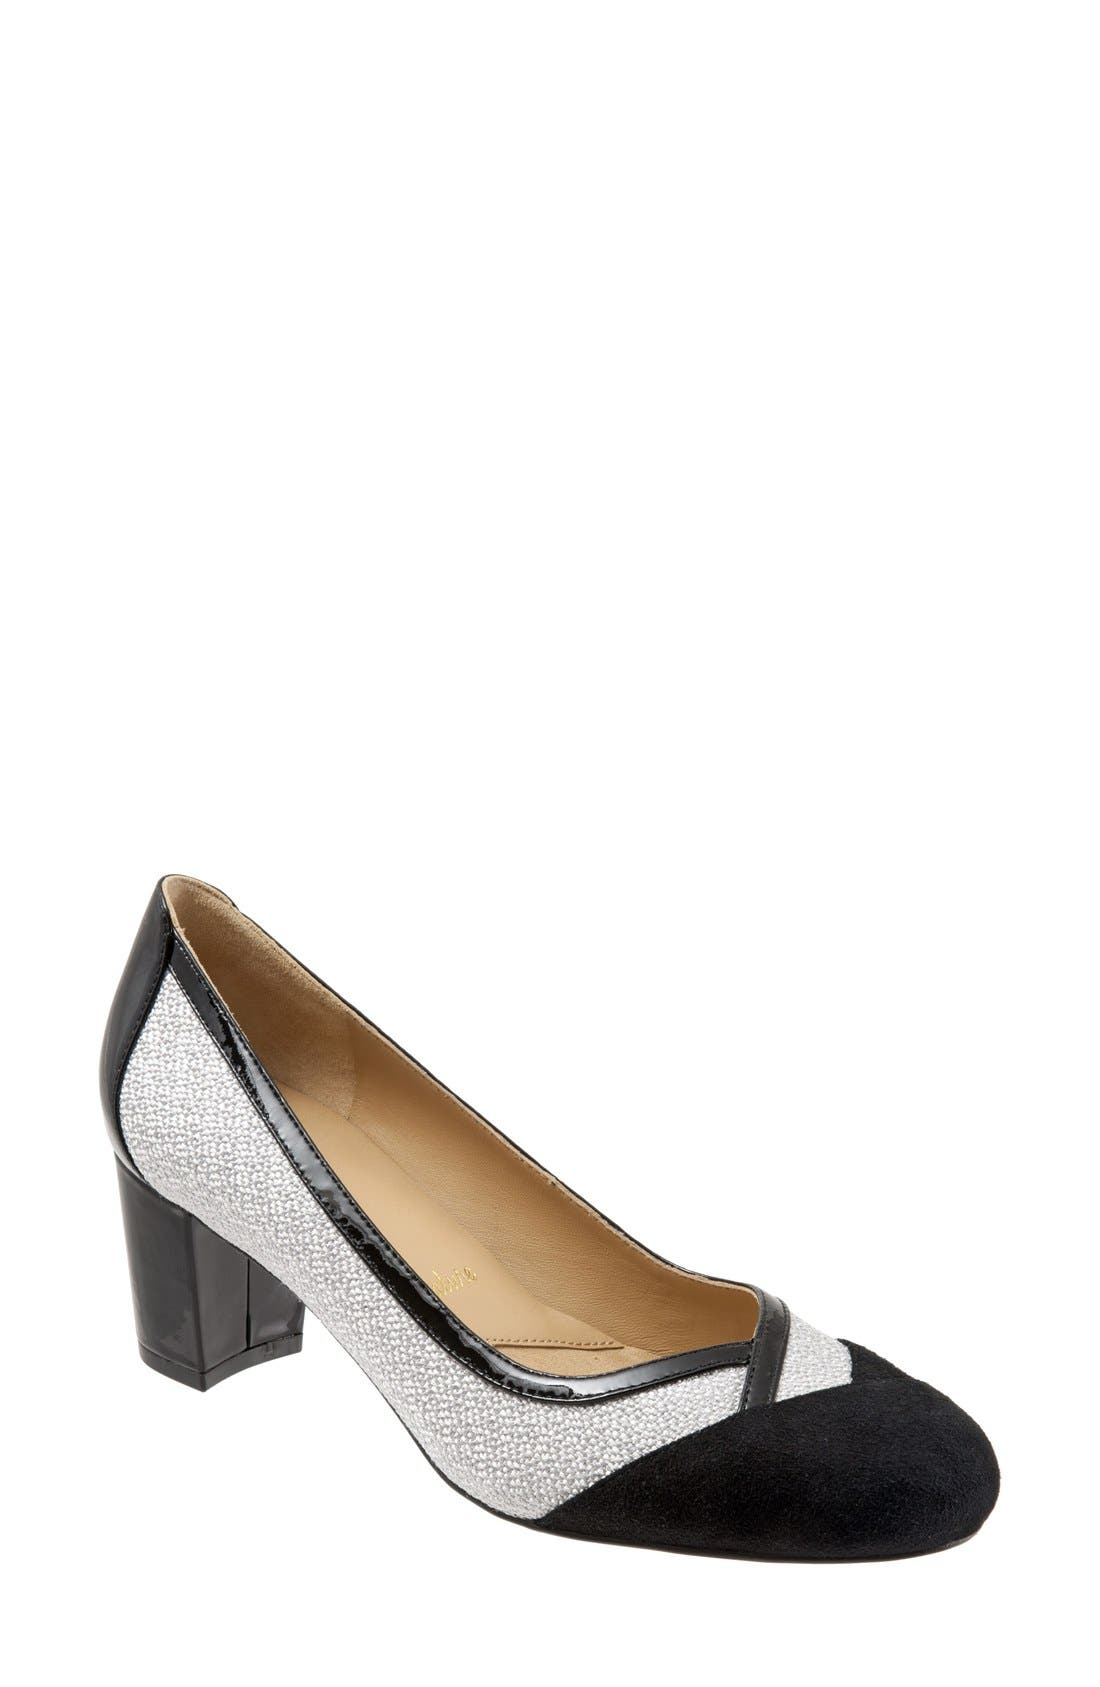 Alternate Image 1 Selected - Trotters 'Phoebe' Pump (Women)